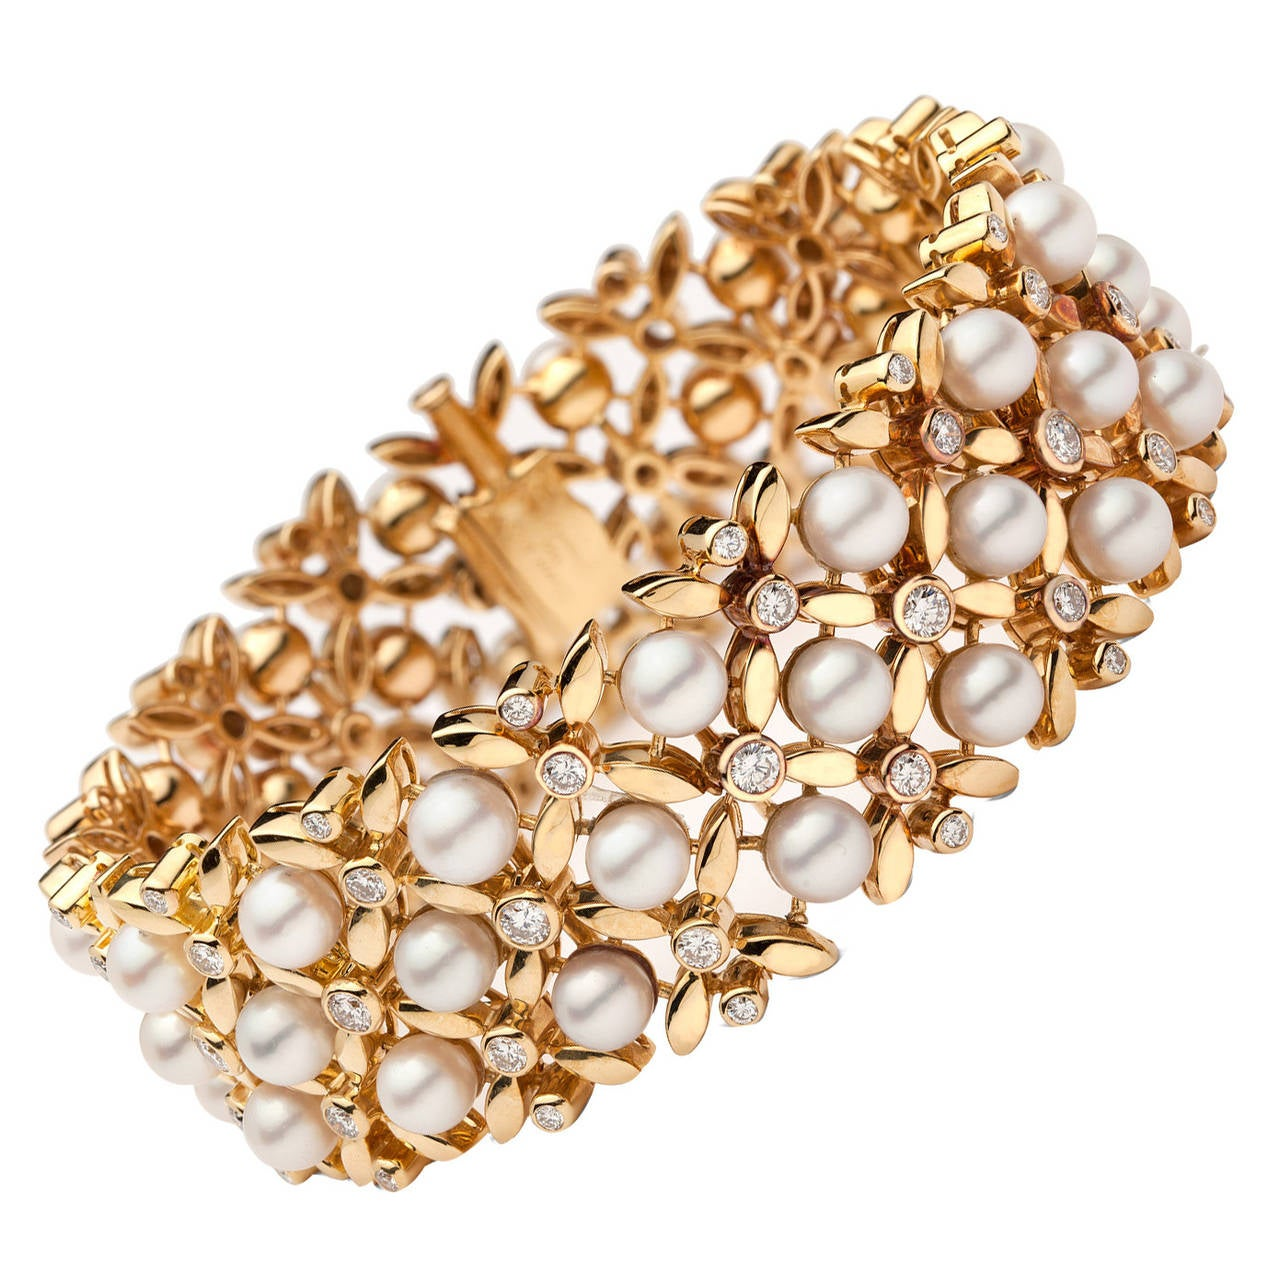 1960s Tiffany & Co. Pearl Diamond Gold Floral Link Bracelet For Sale